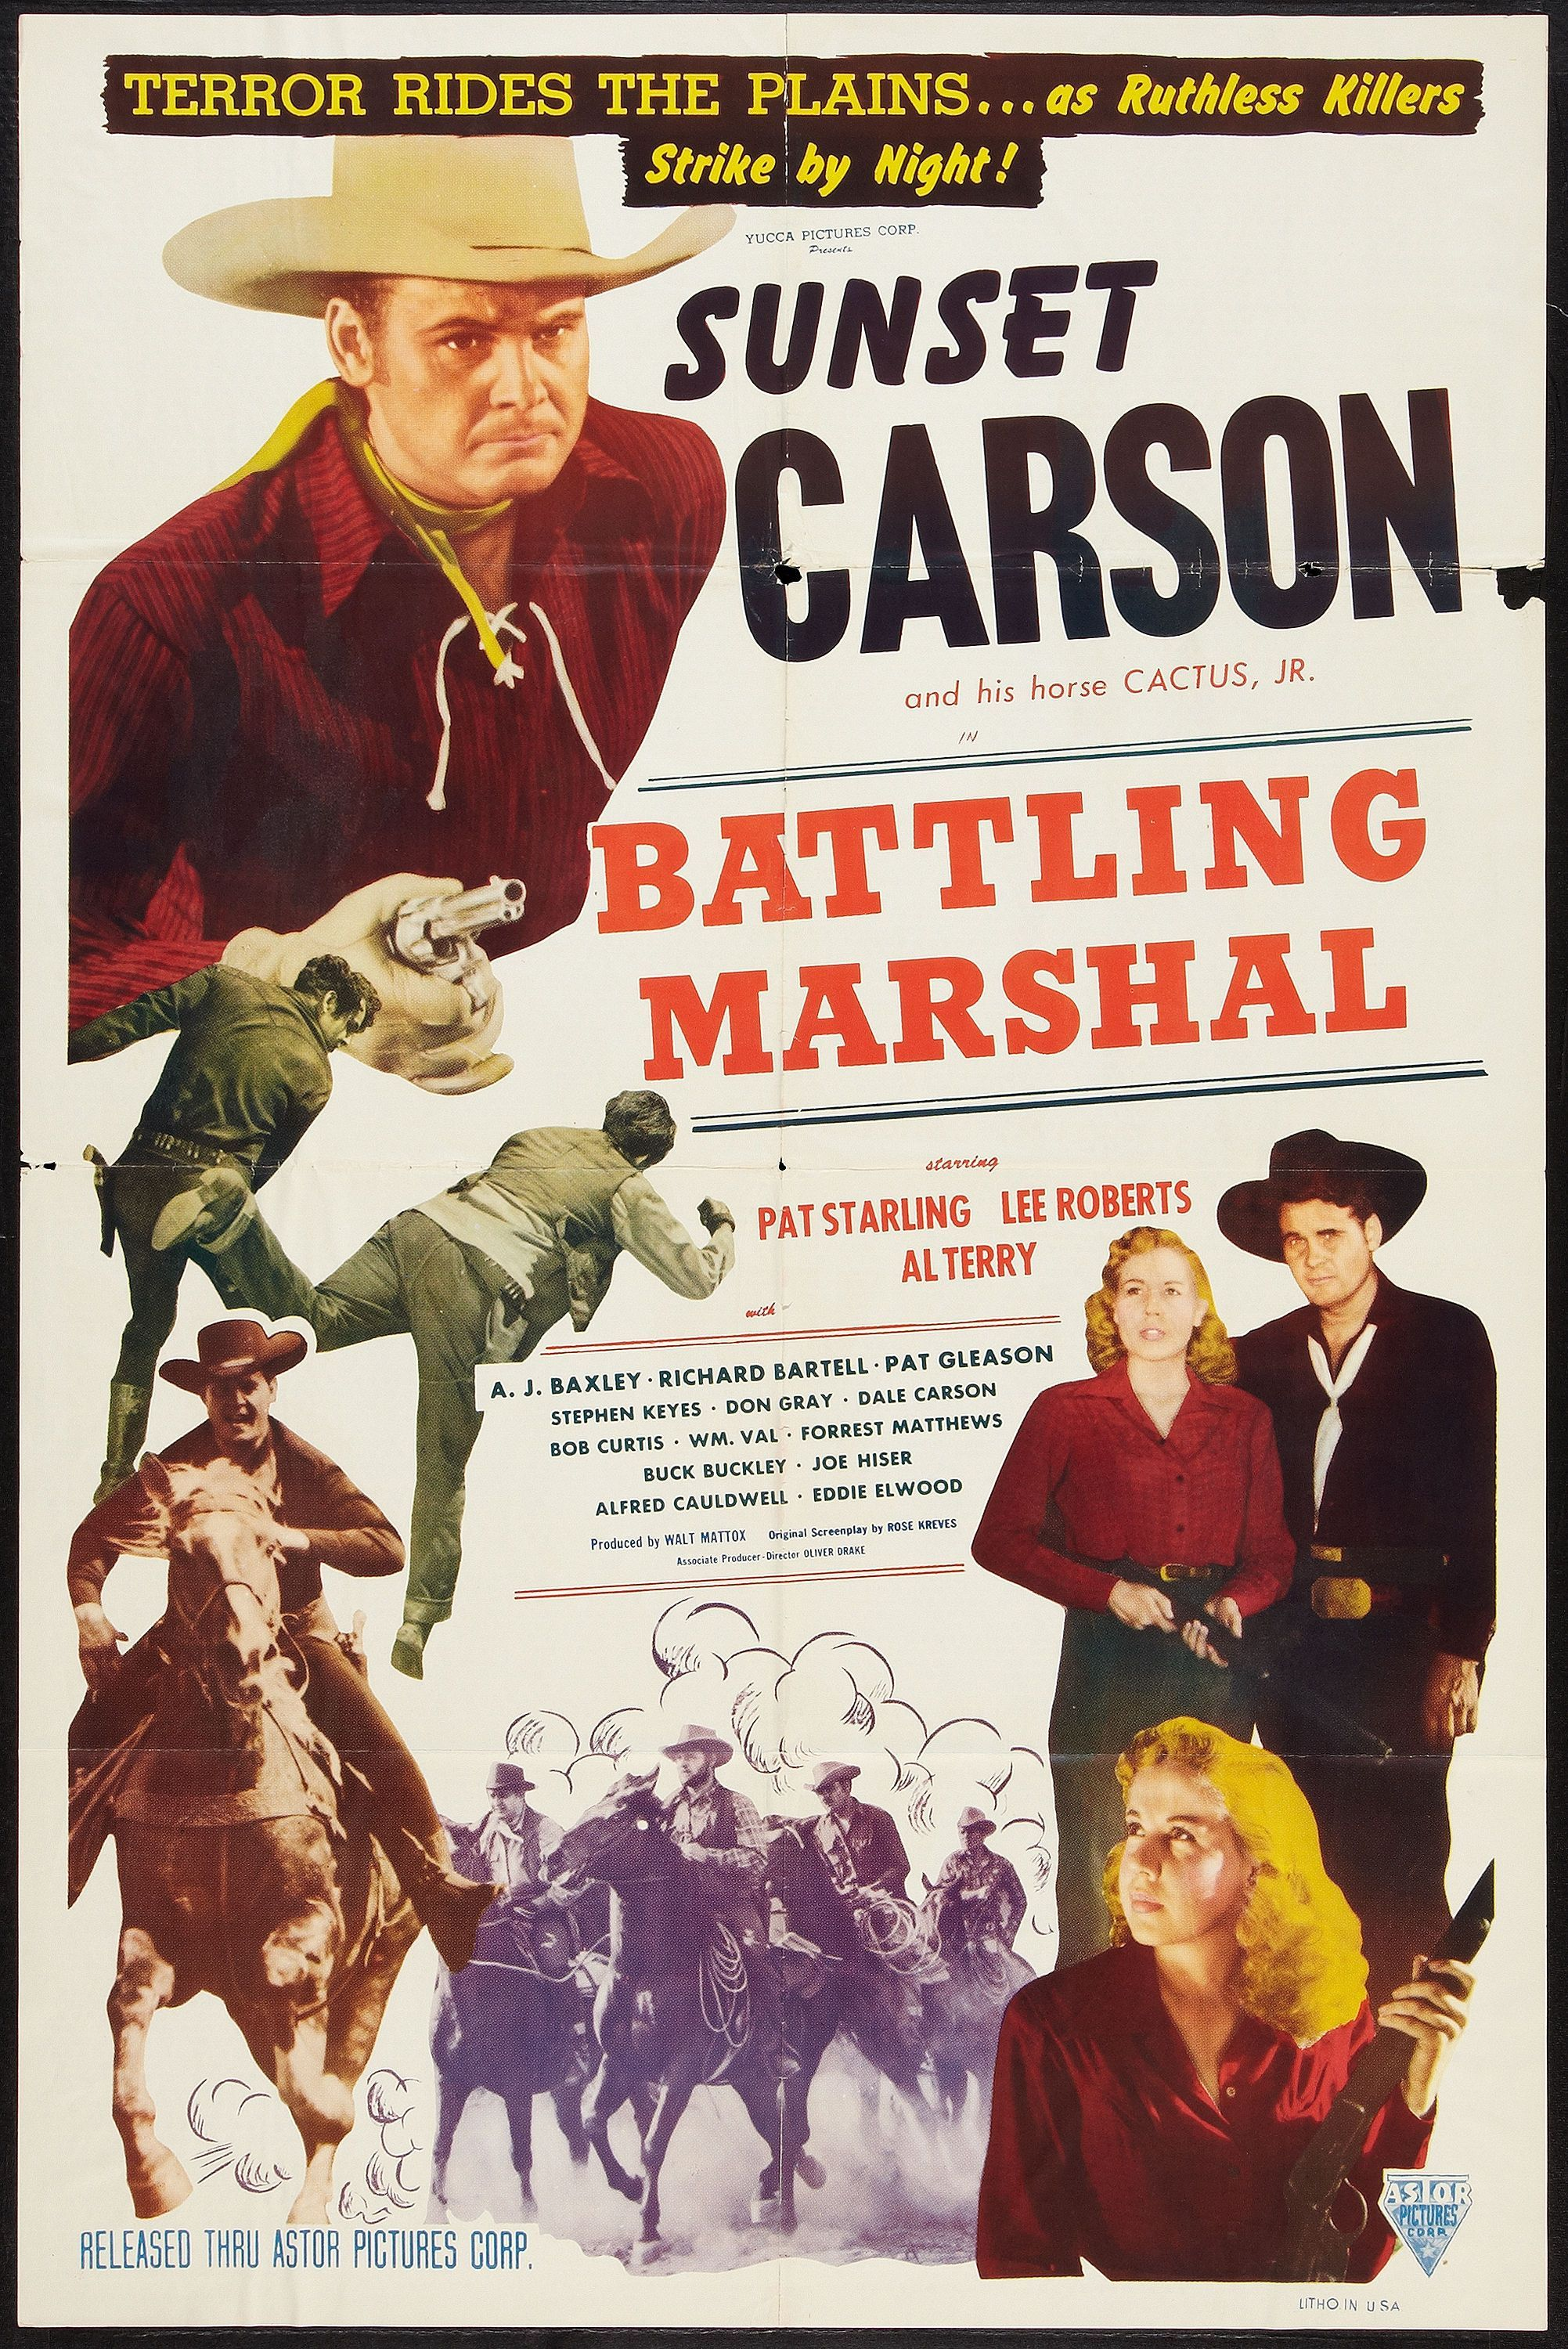 Sunset Carson, Pat Starling, and Cactus Jr. in Battling Marshal (1950)